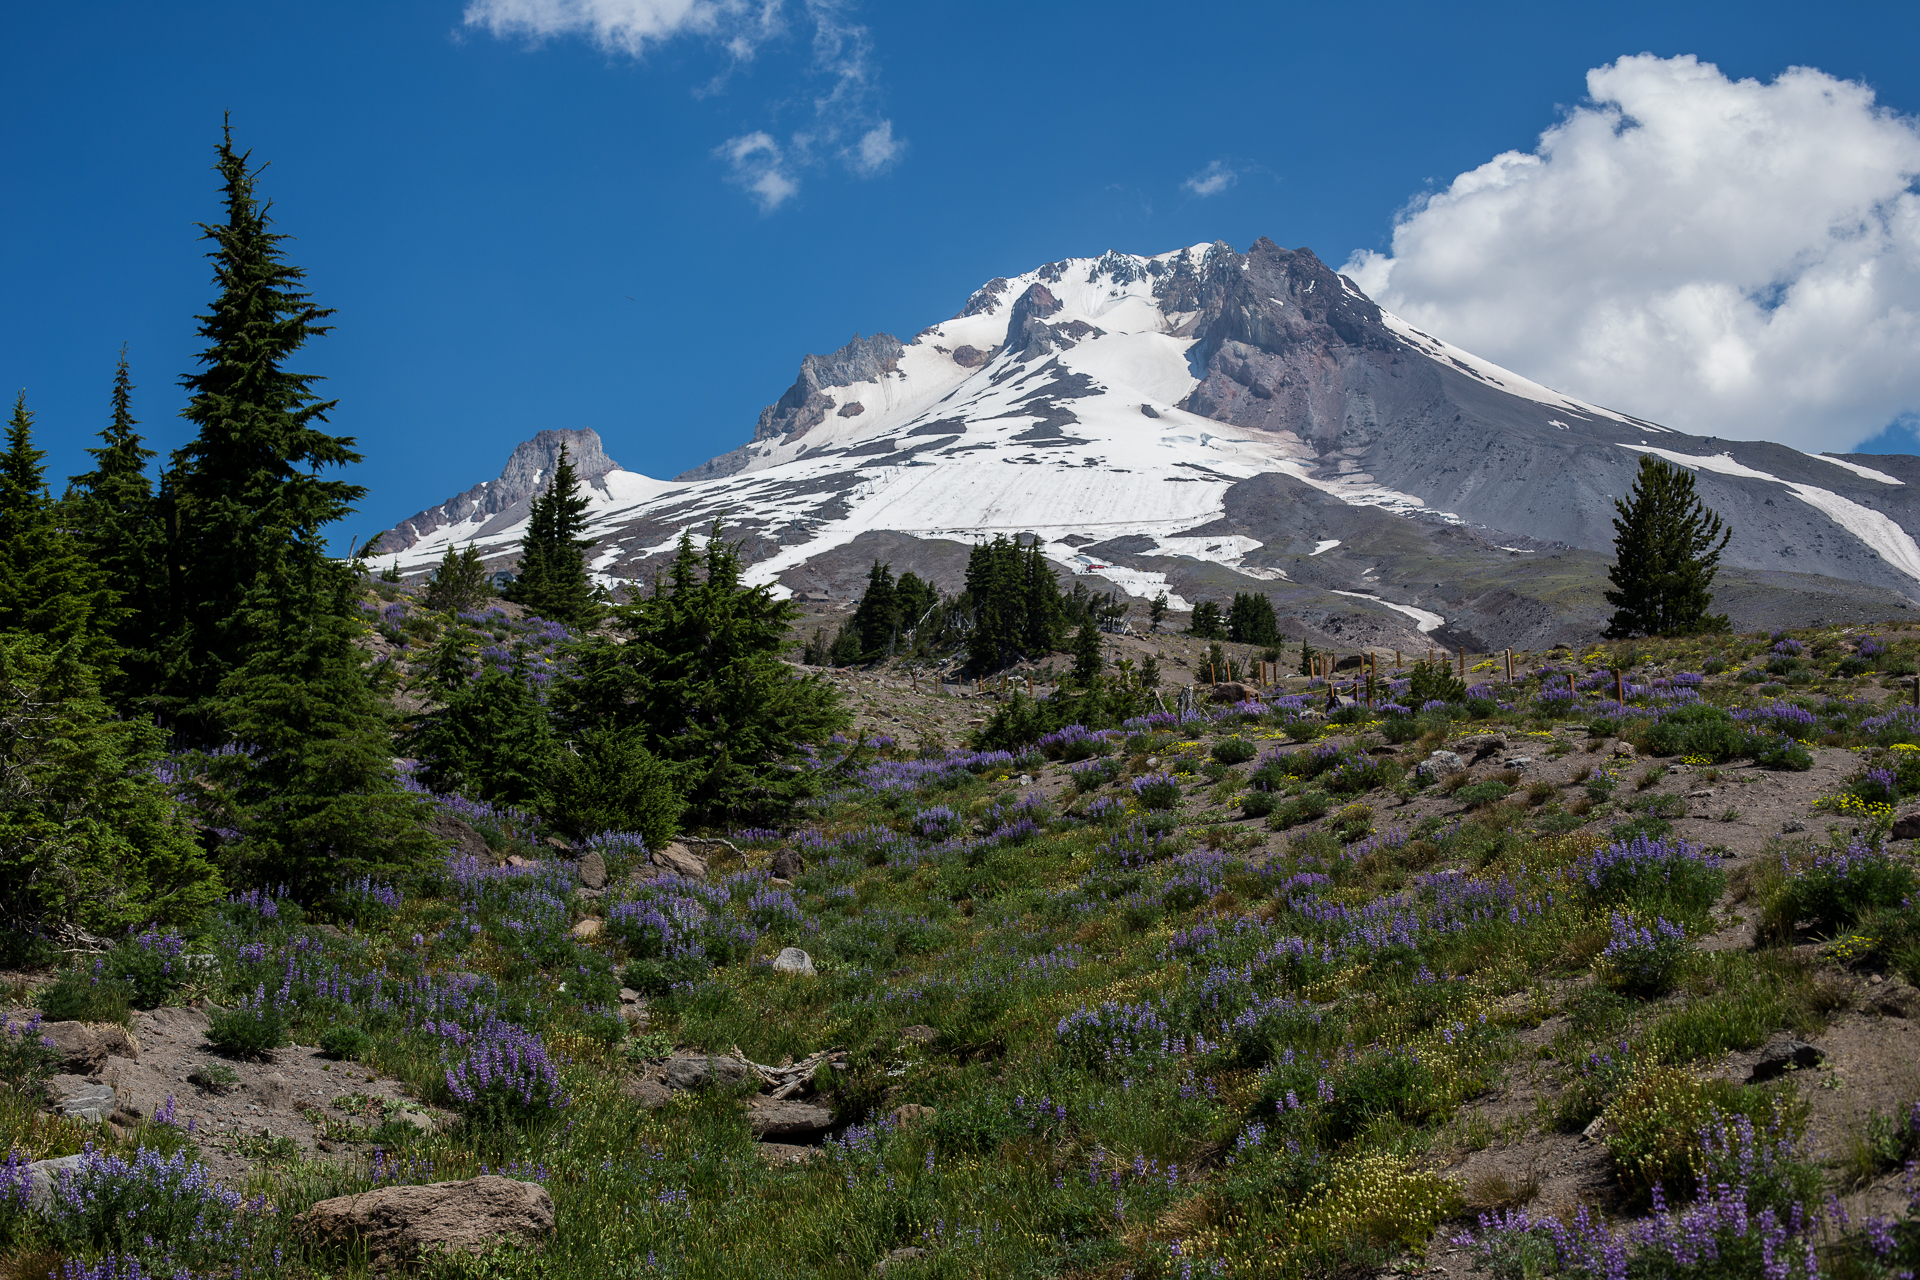 Lots of flowers, as Mount Hood dominates the view.